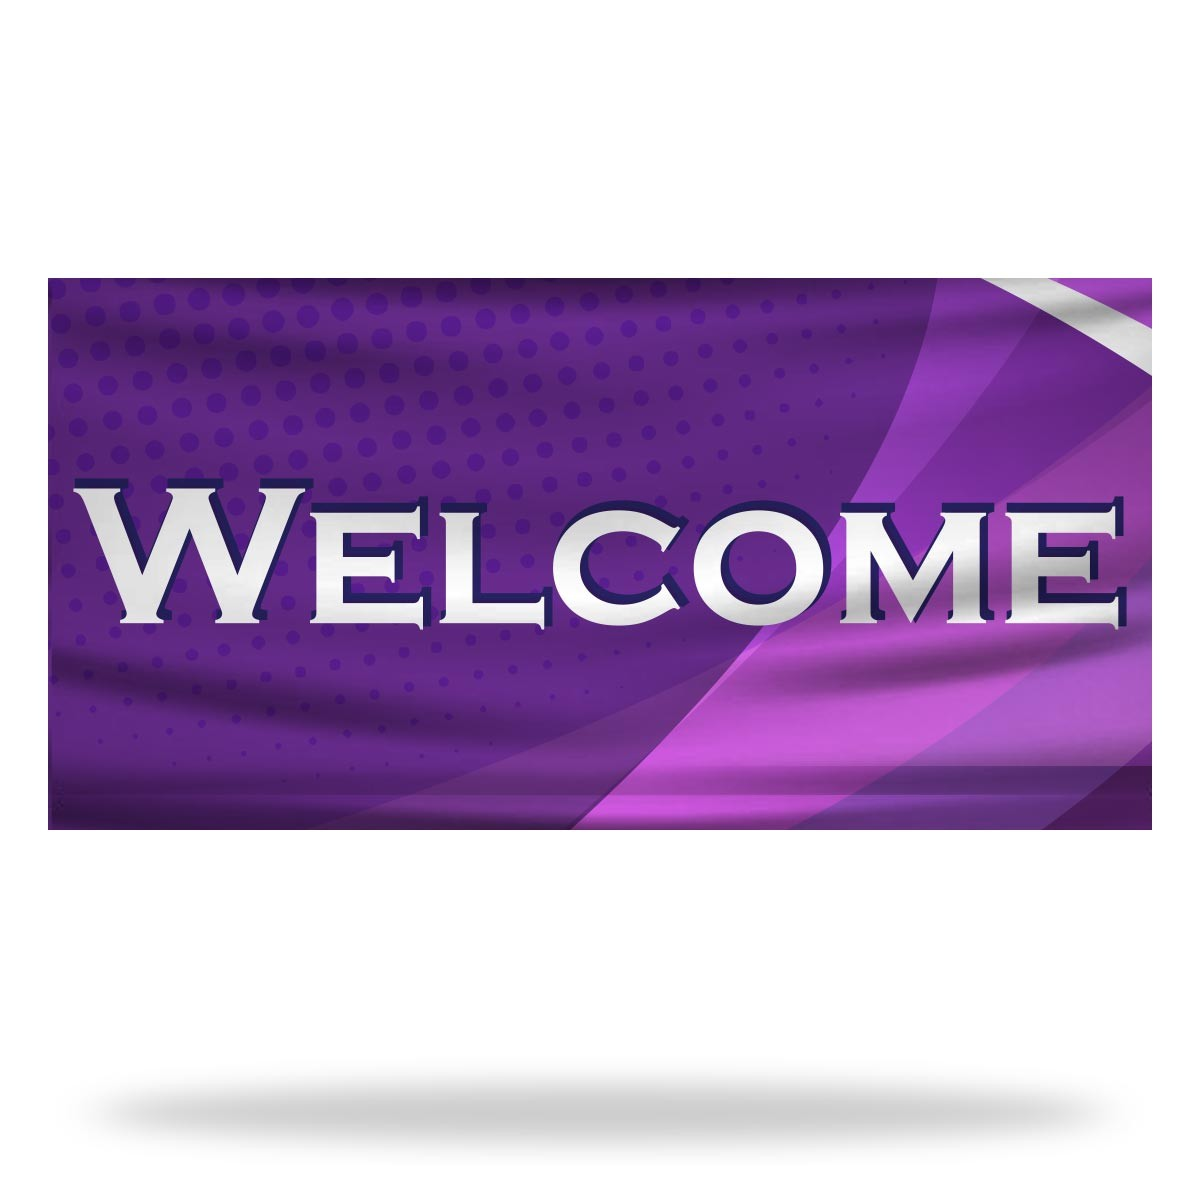 Welcome Flags & Banners Design 03